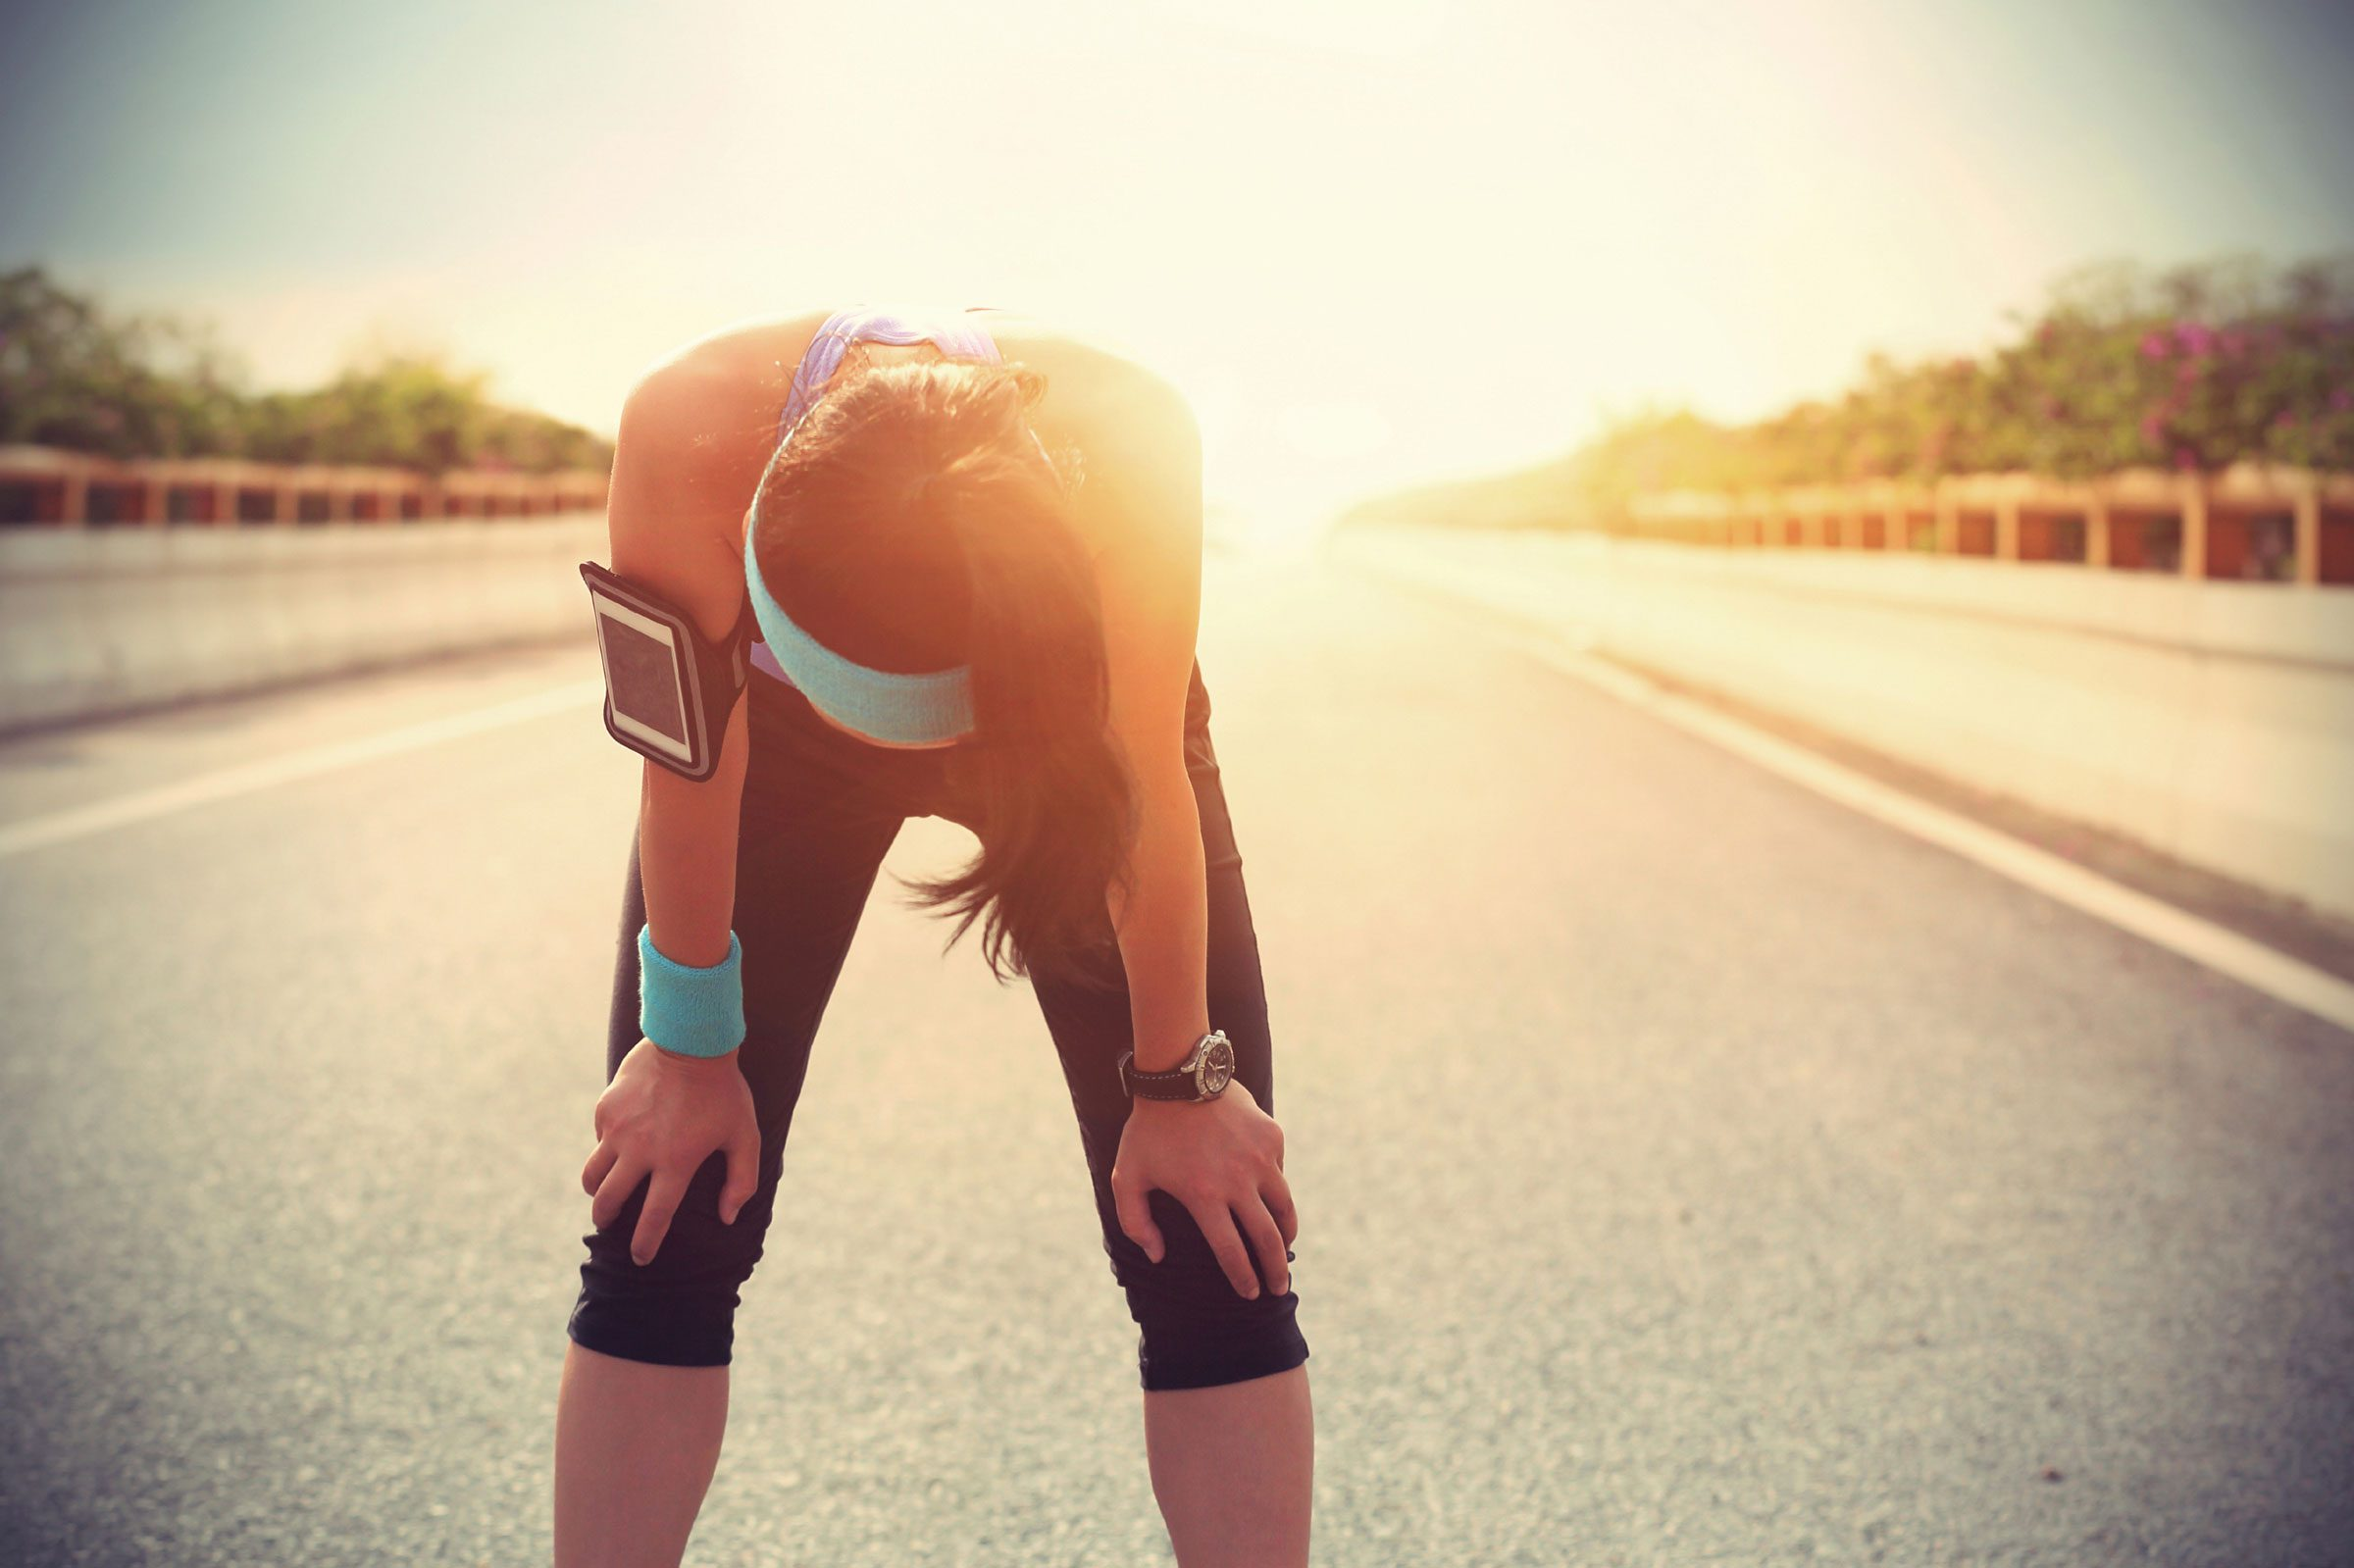 Why do I sometimes get side stitches when I run?